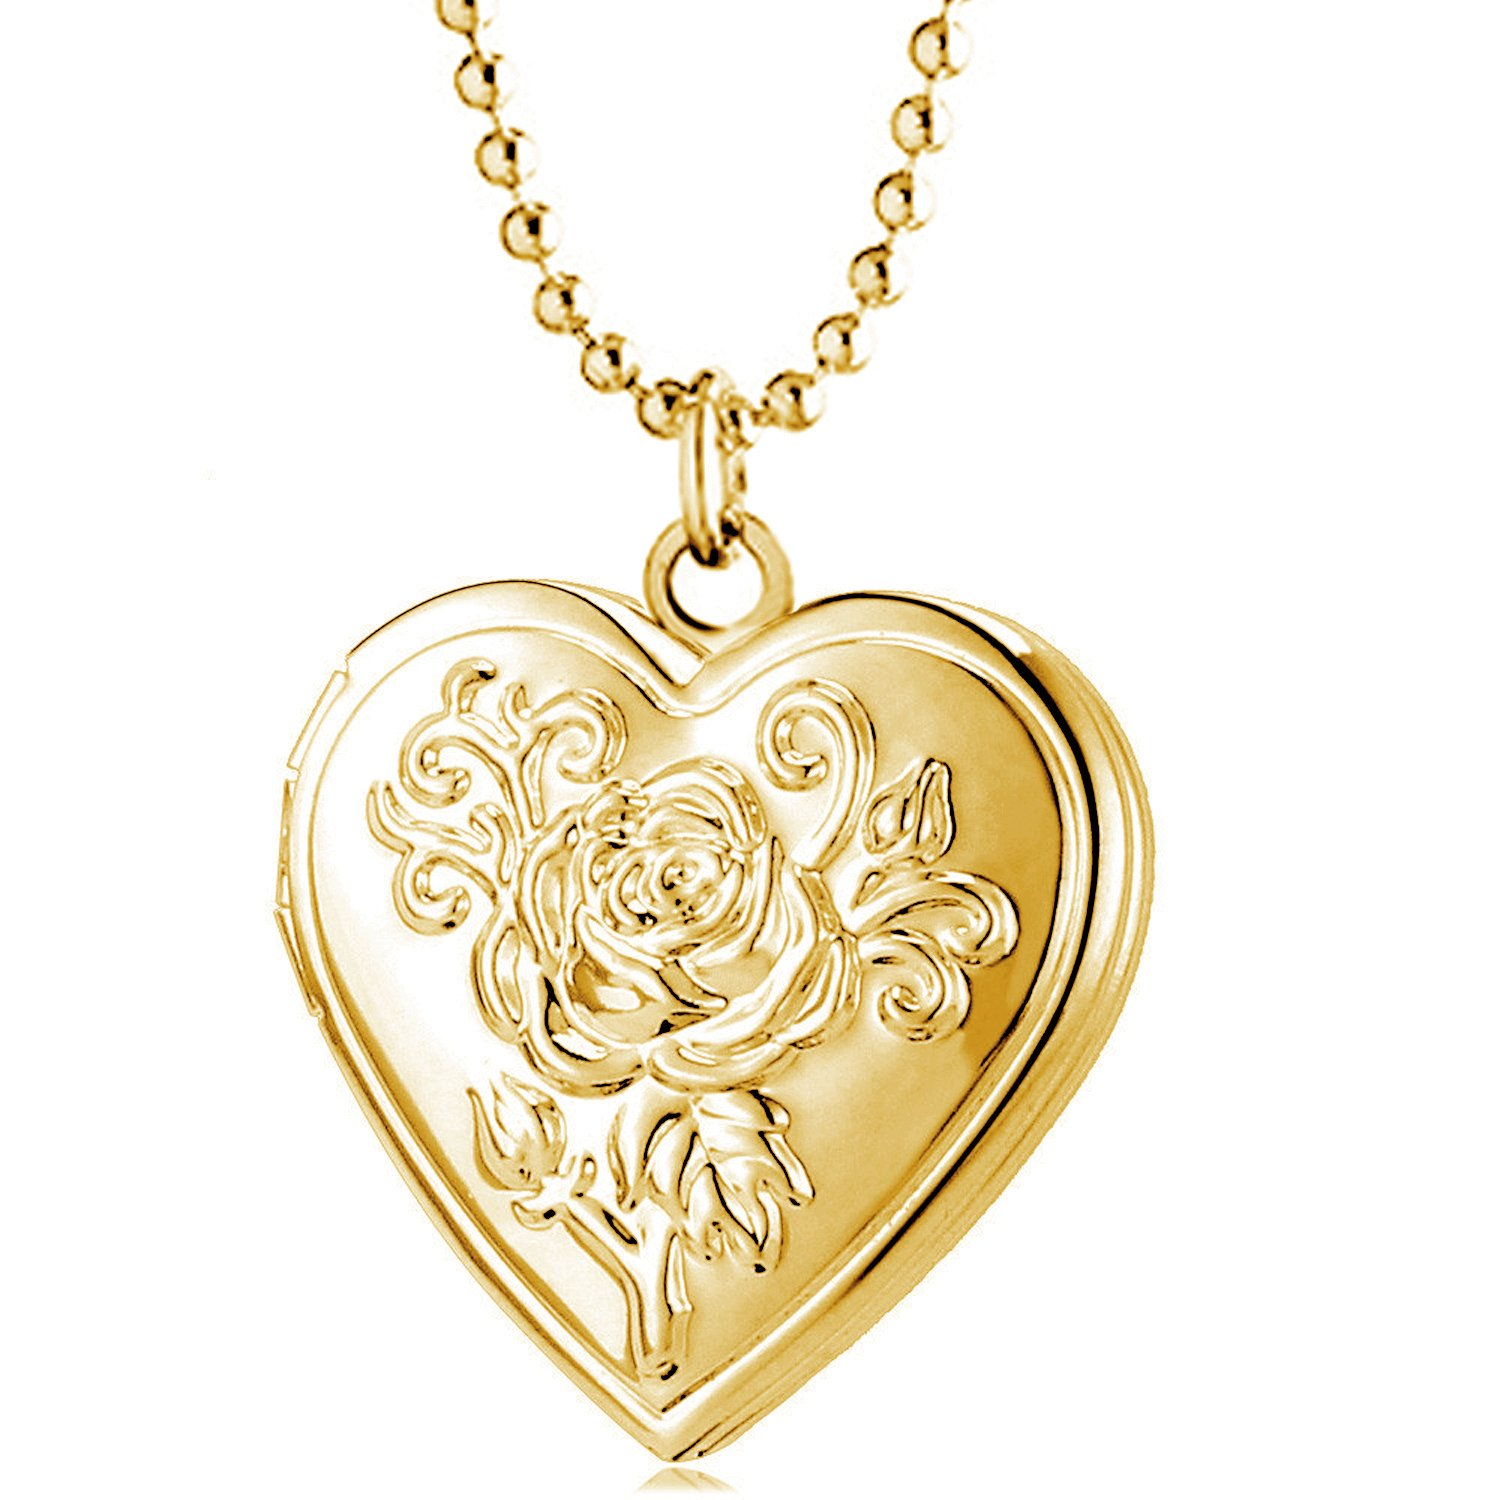 YOUFENG Love Heart Locket Necklace Pendant Locket Necklace That Holds Pictures Gifts for Women Girls Kids Jewelry HJFL05-J